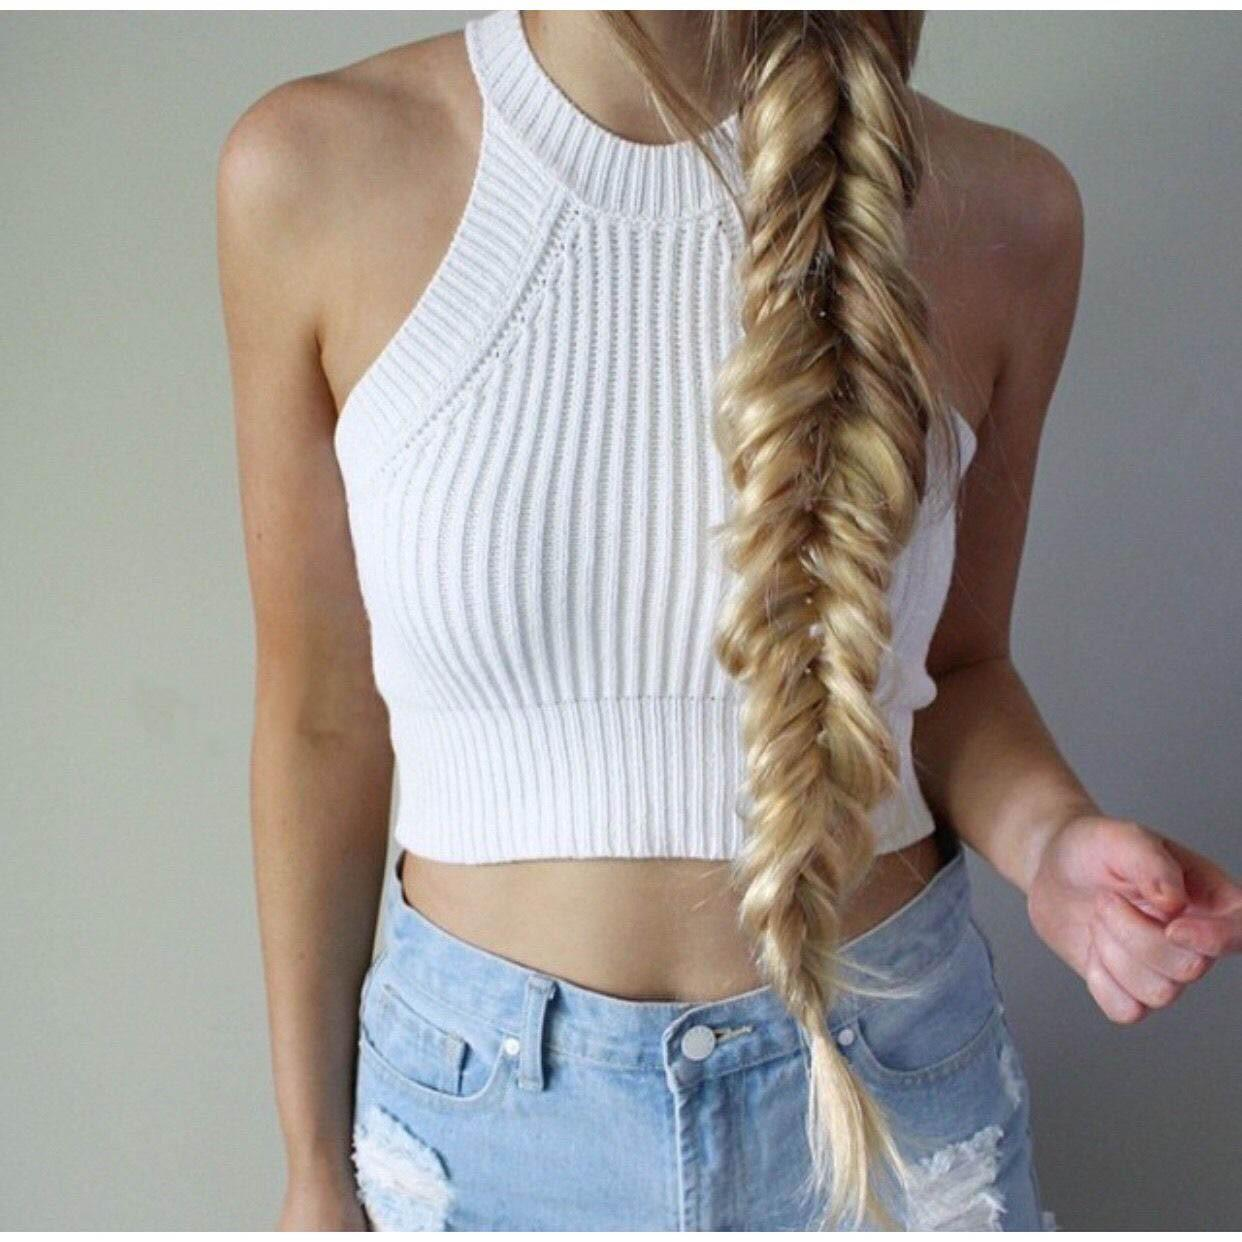 30e42dc3d0c29 2019 Brandy Melville Off Shoulder Knitted Bustier Crop Top Women Round Neck  Elastic Tube Tank Tops Beach Sexy Camis Sweater From Vera89